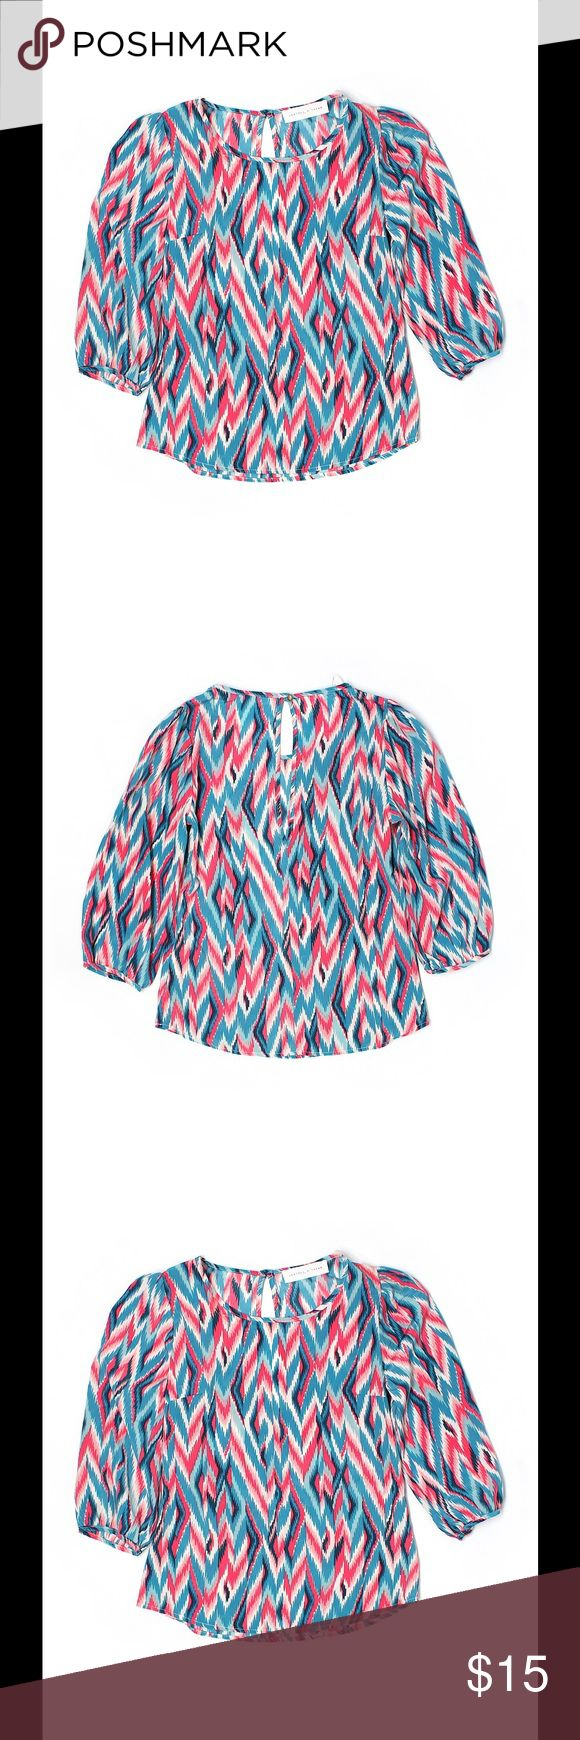 "💕 PEACHES N CREAM bright chevron blouse top the PEACHES N CREAM bright chevron top ♡  scoop neckline gold tone textured button at neck 3/4 Sleeve chevron / herringbone pattern teal, pink, black, cream, bright salmon print 32"" chest, 20"" length 100% polyester hand wash   condition: excellent condition ♡   💕 PEACHES N CREAM  Tops Blouses"